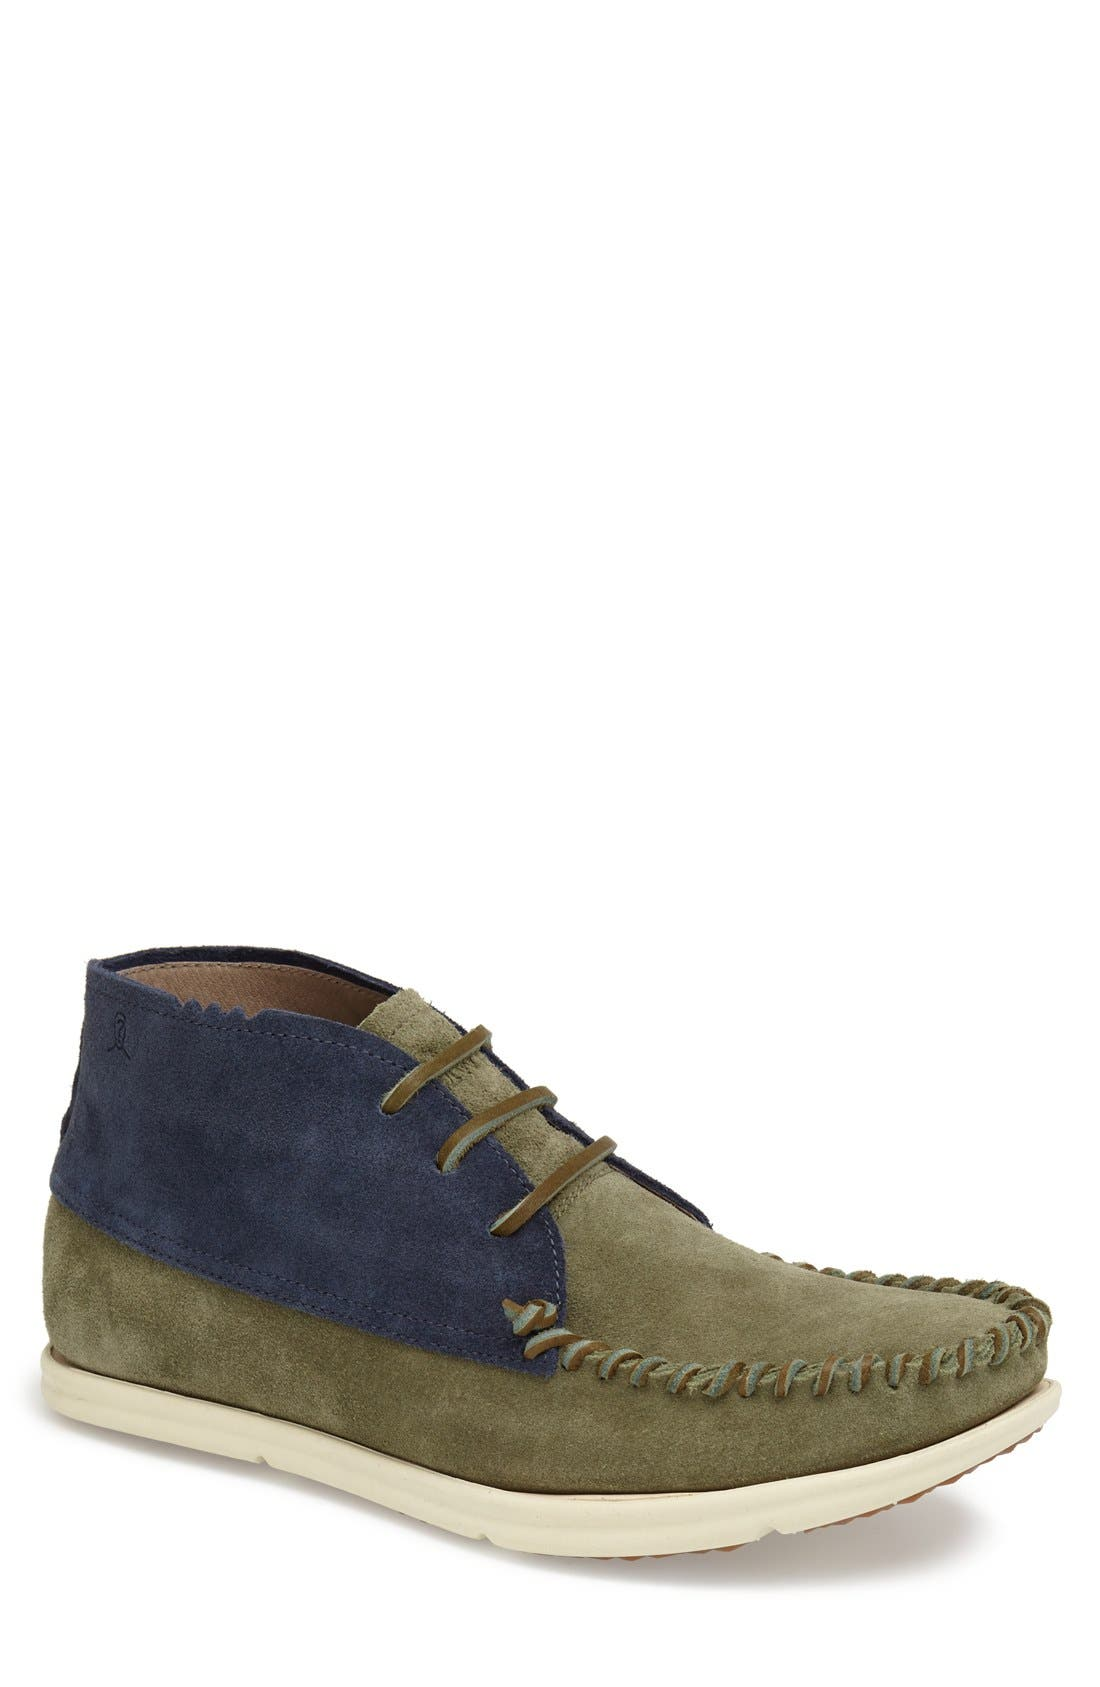 Alternate Image 1 Selected - ohw? 'Louis' Two Tone Suede Moc Toe Boot (Men)